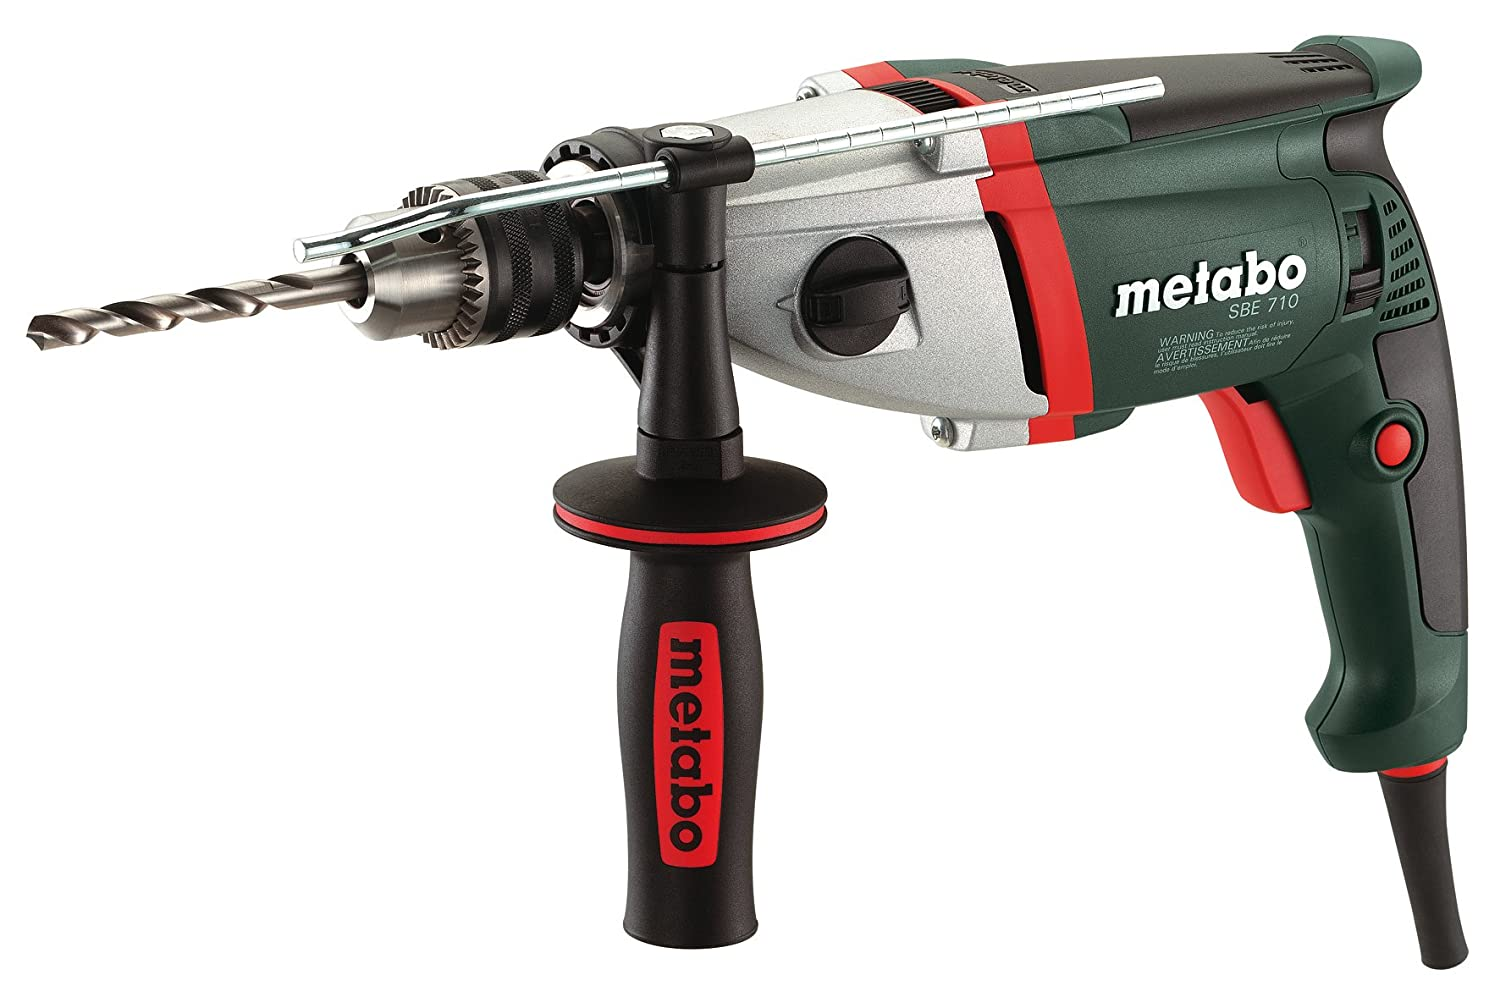 Metabo SBE 710 0-1,000/0-3,100 RPM 5.8 AMP 1/2-Inch Hammer Drill by Metabo B005G10PNK